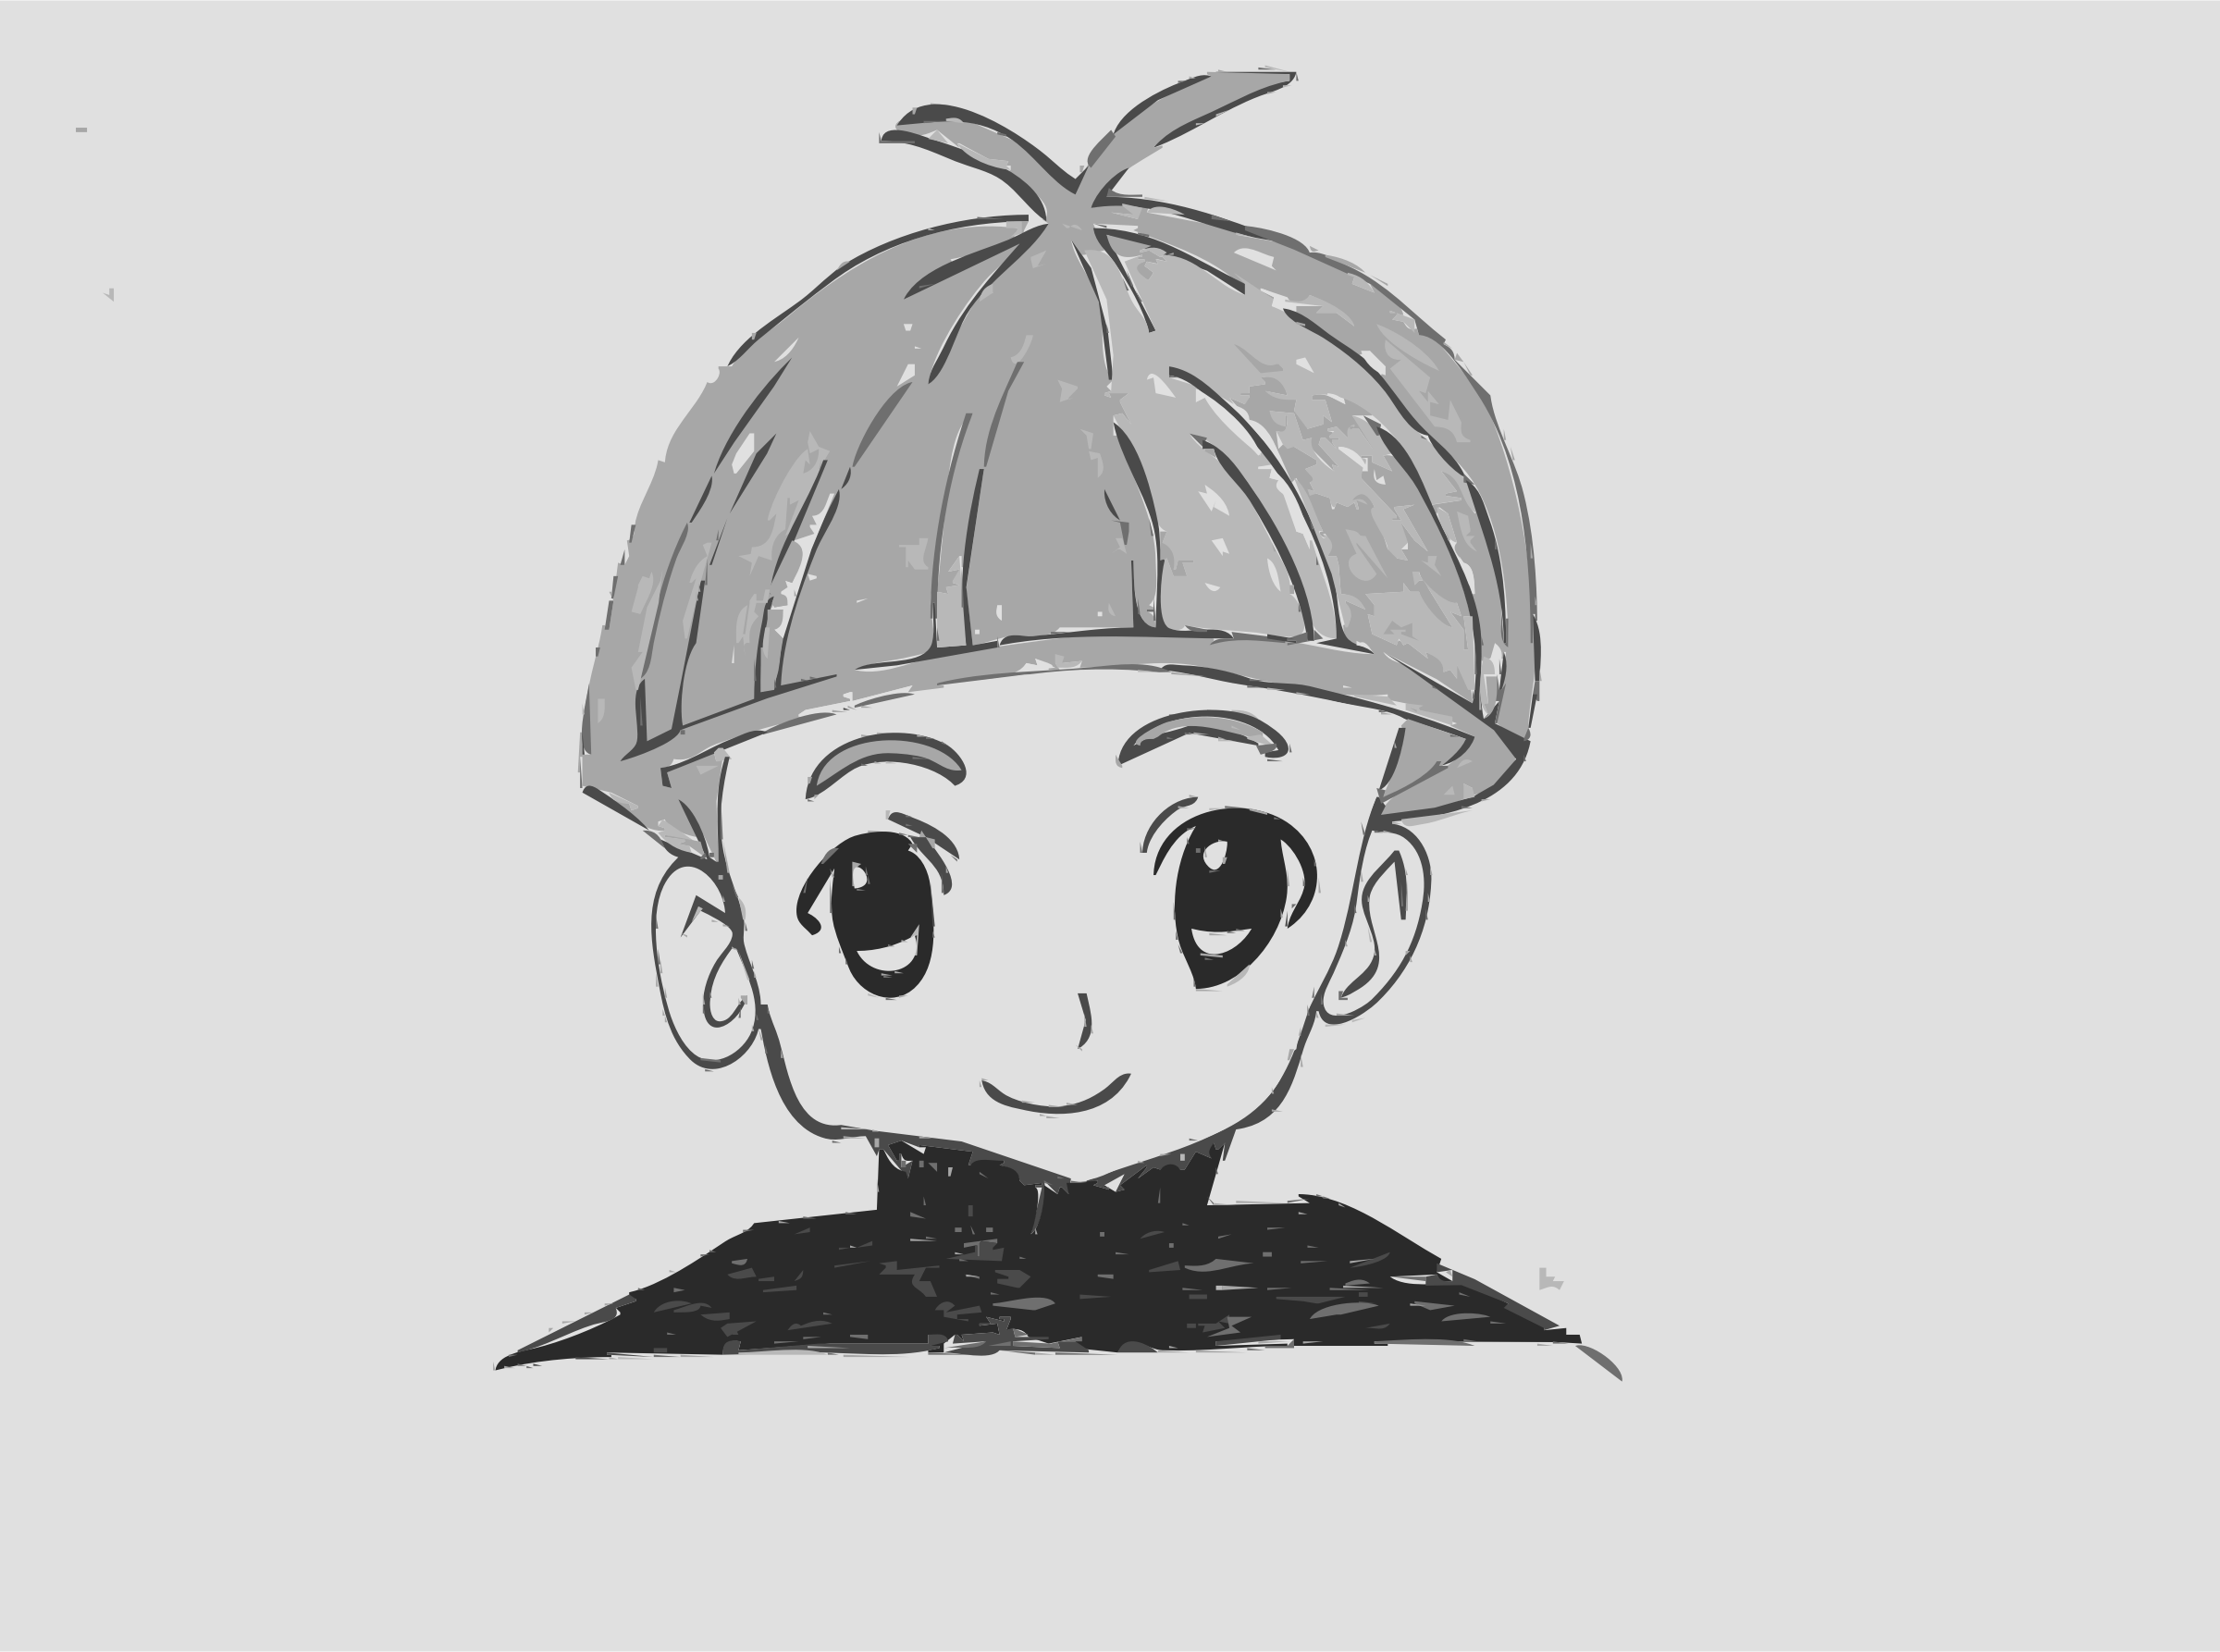 Small Manga Boy by martinaledermann